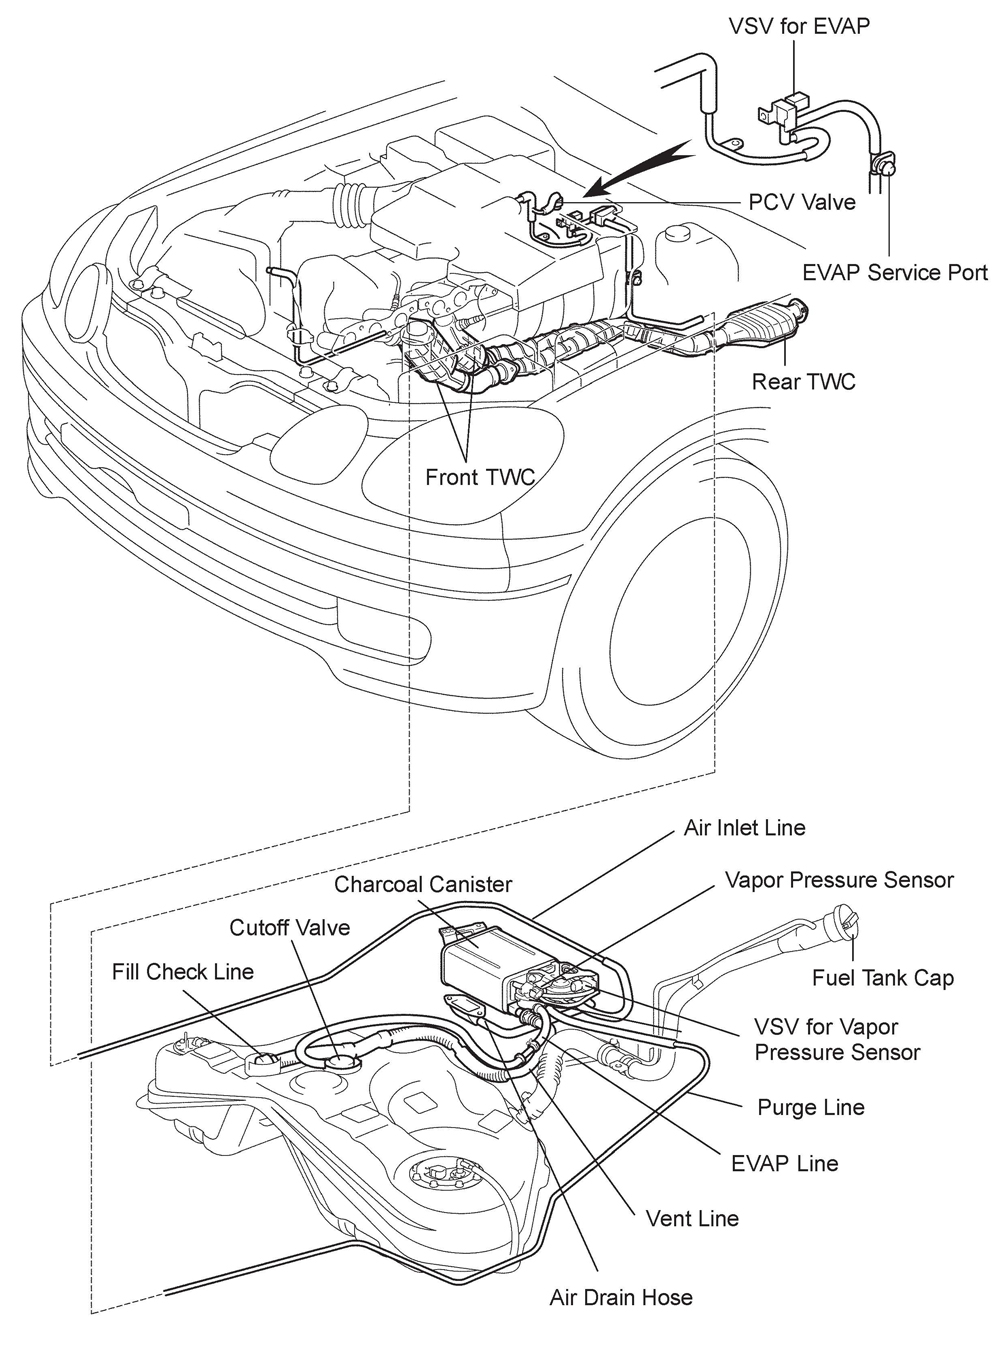 2002 Lexus Gs300 Parts Diagram. Lexus. Auto Wiring Diagram